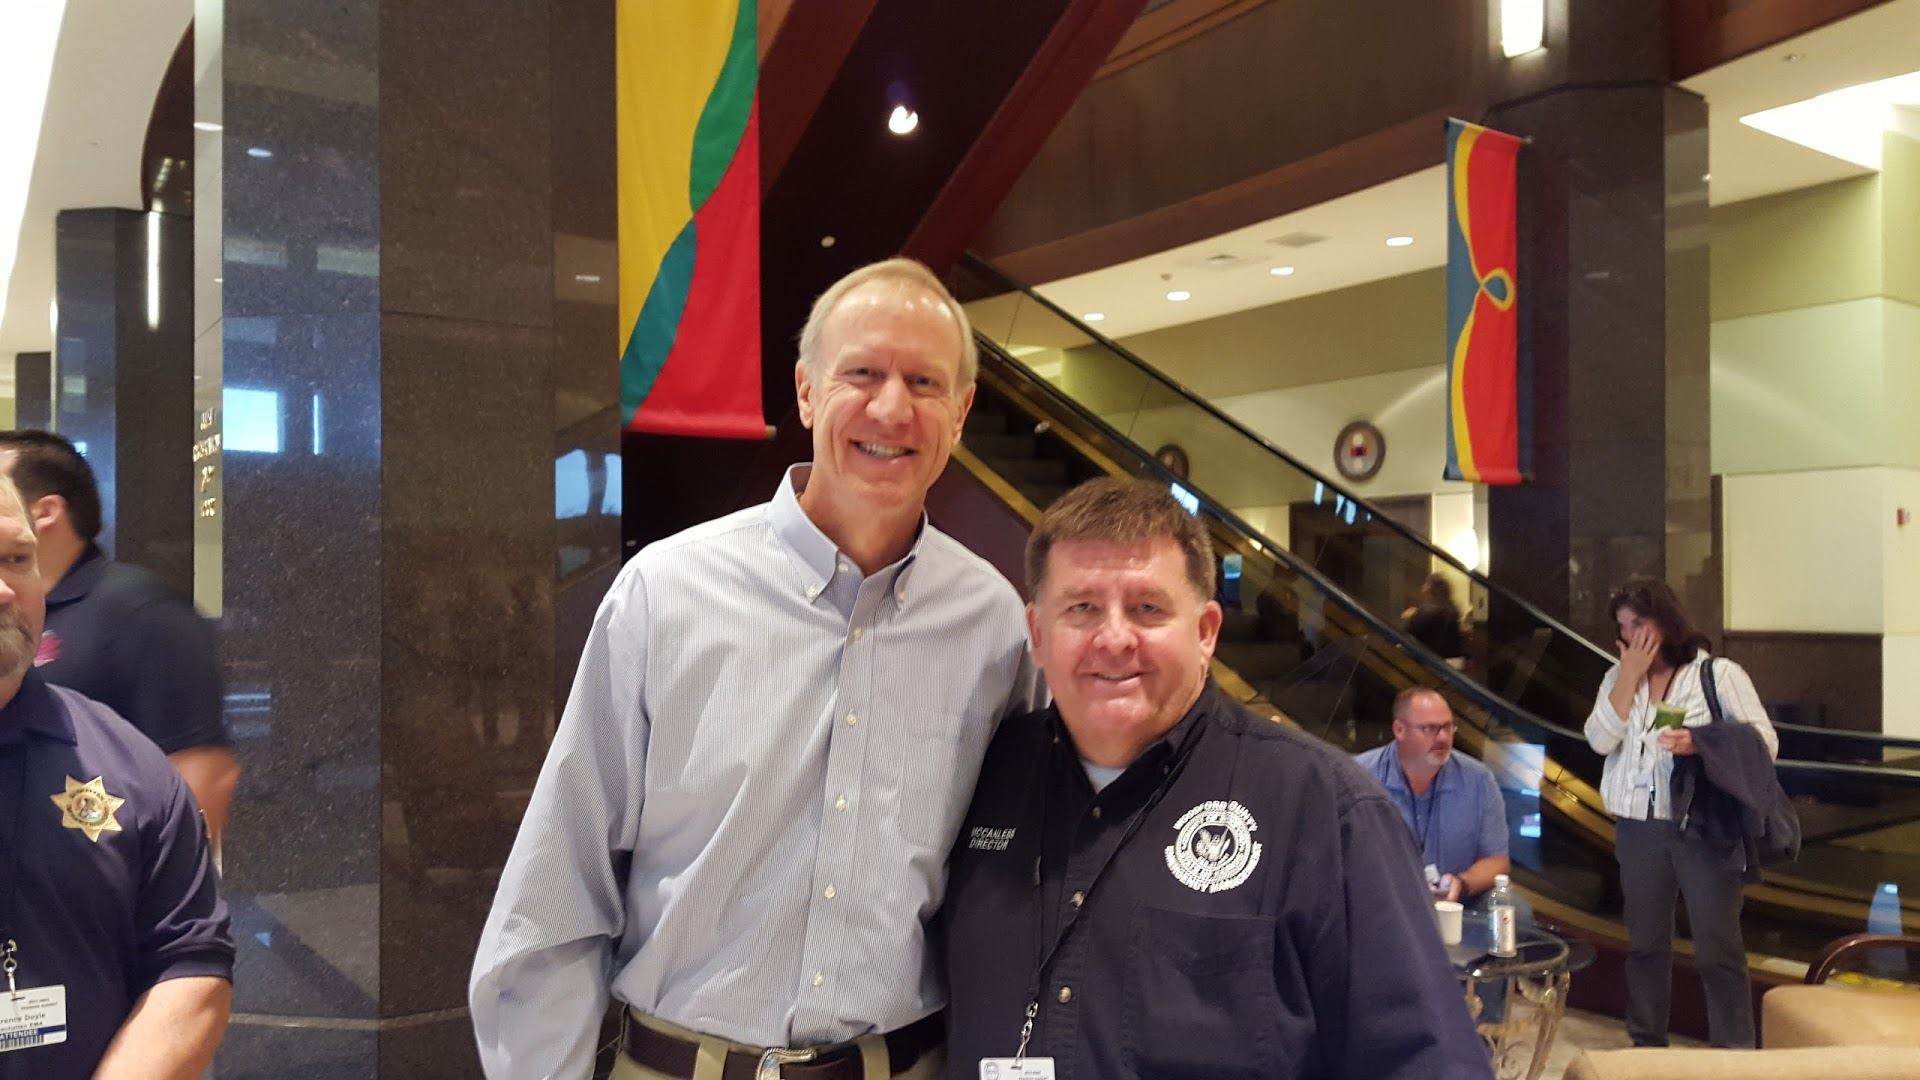 Kent McCanless with Governor Rauner